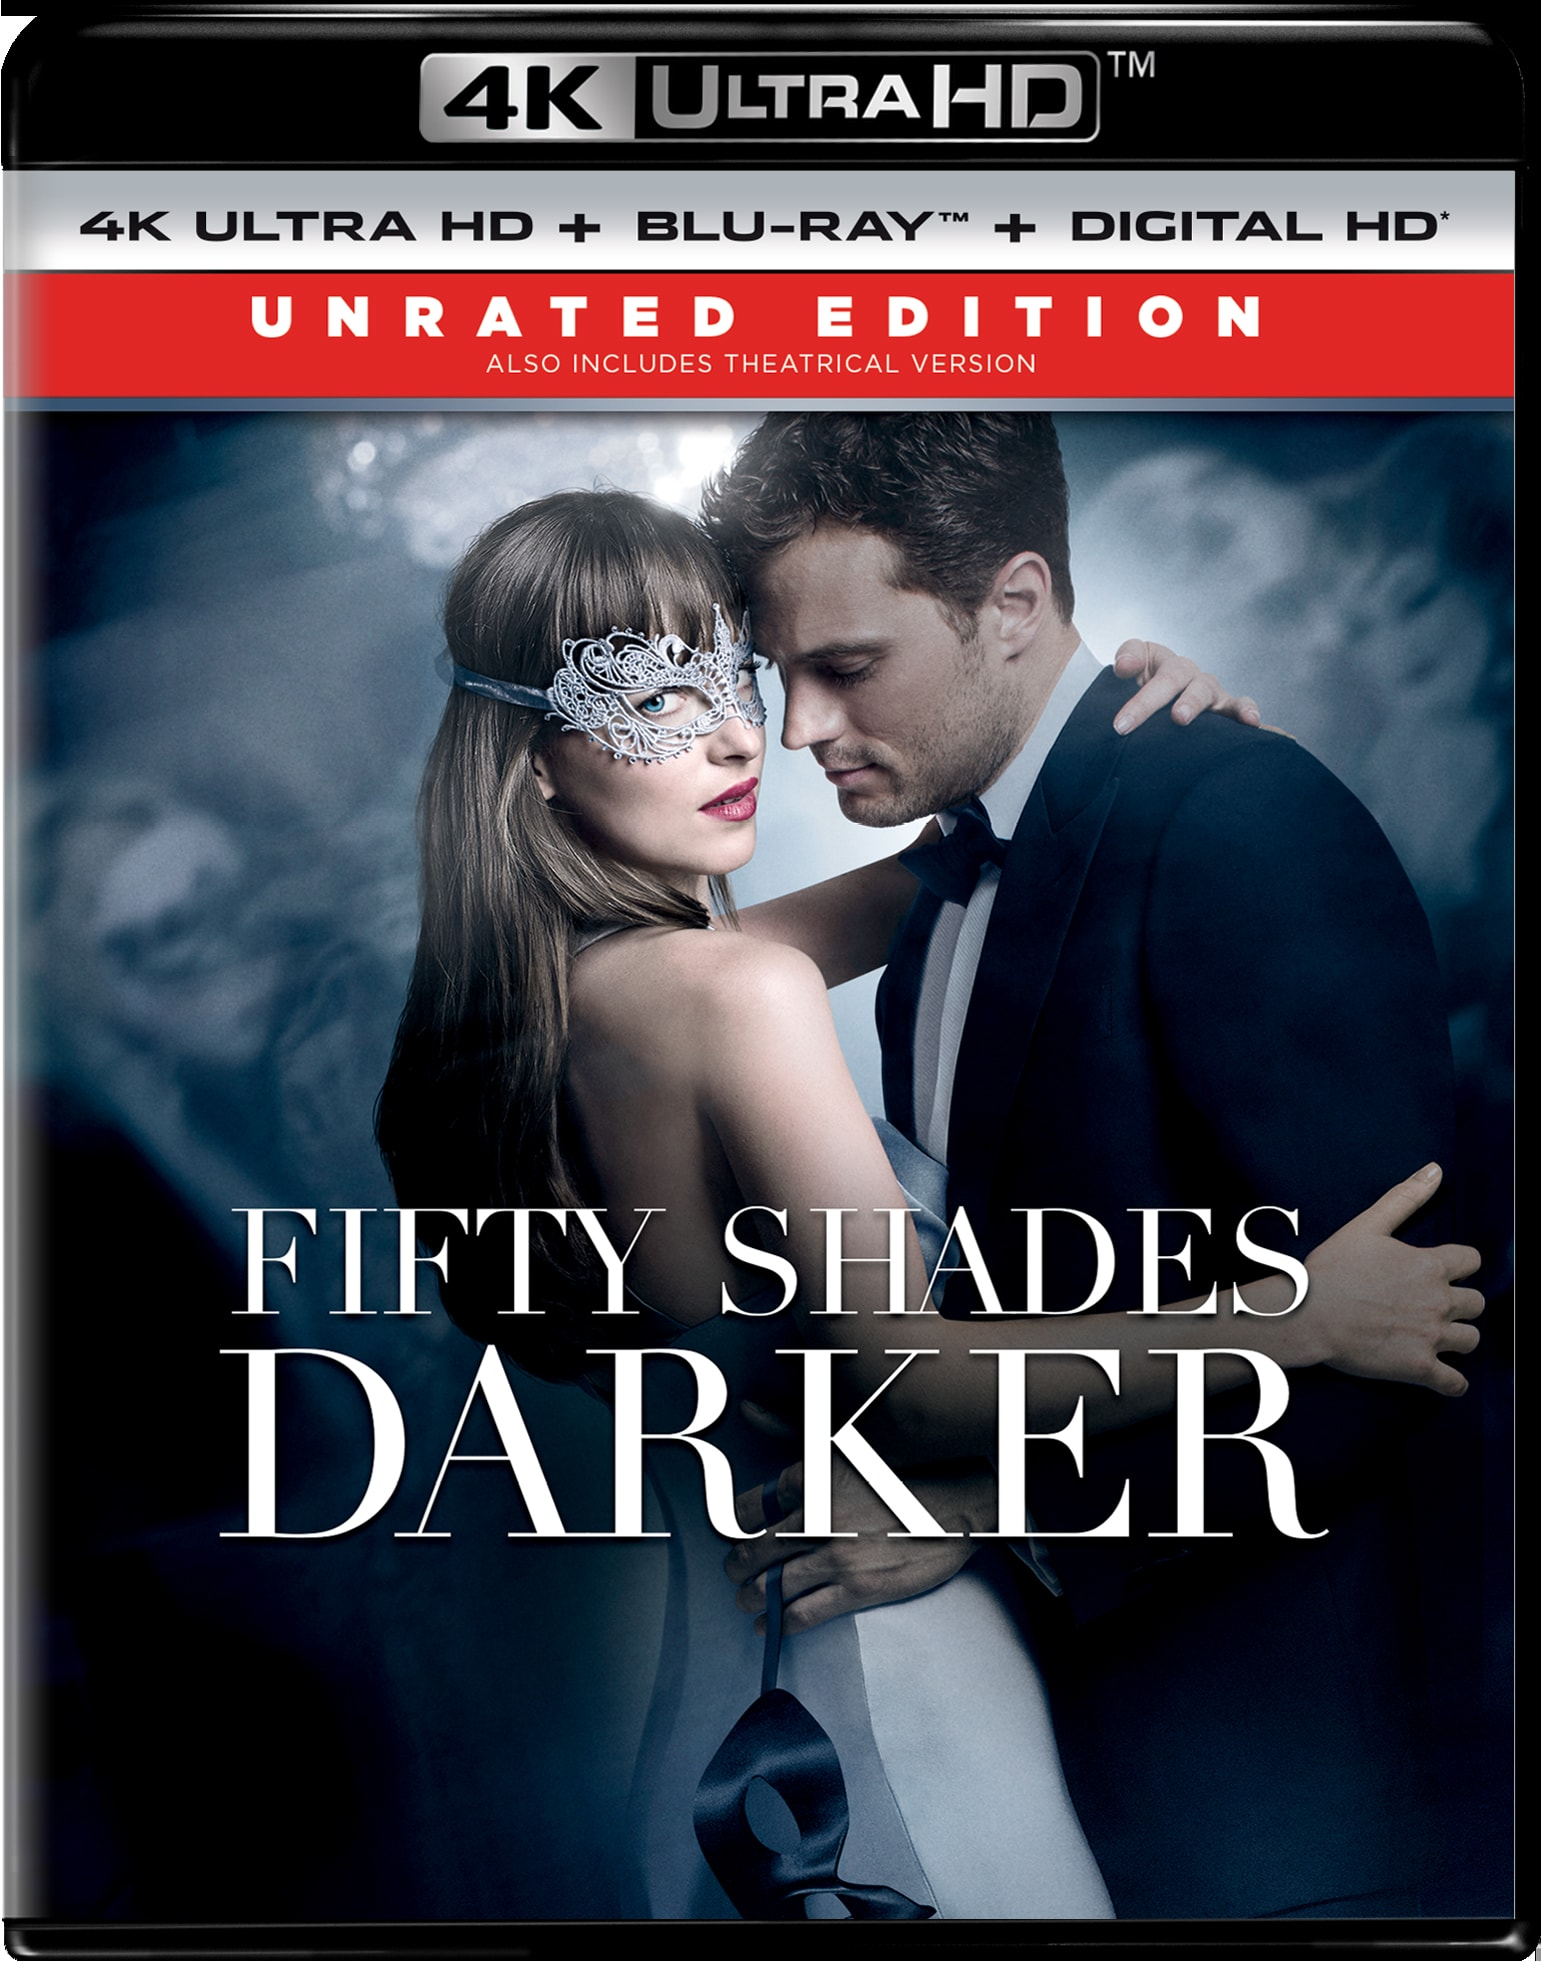 Fifty Shades Darker (4K Ultra HD) [UHD]